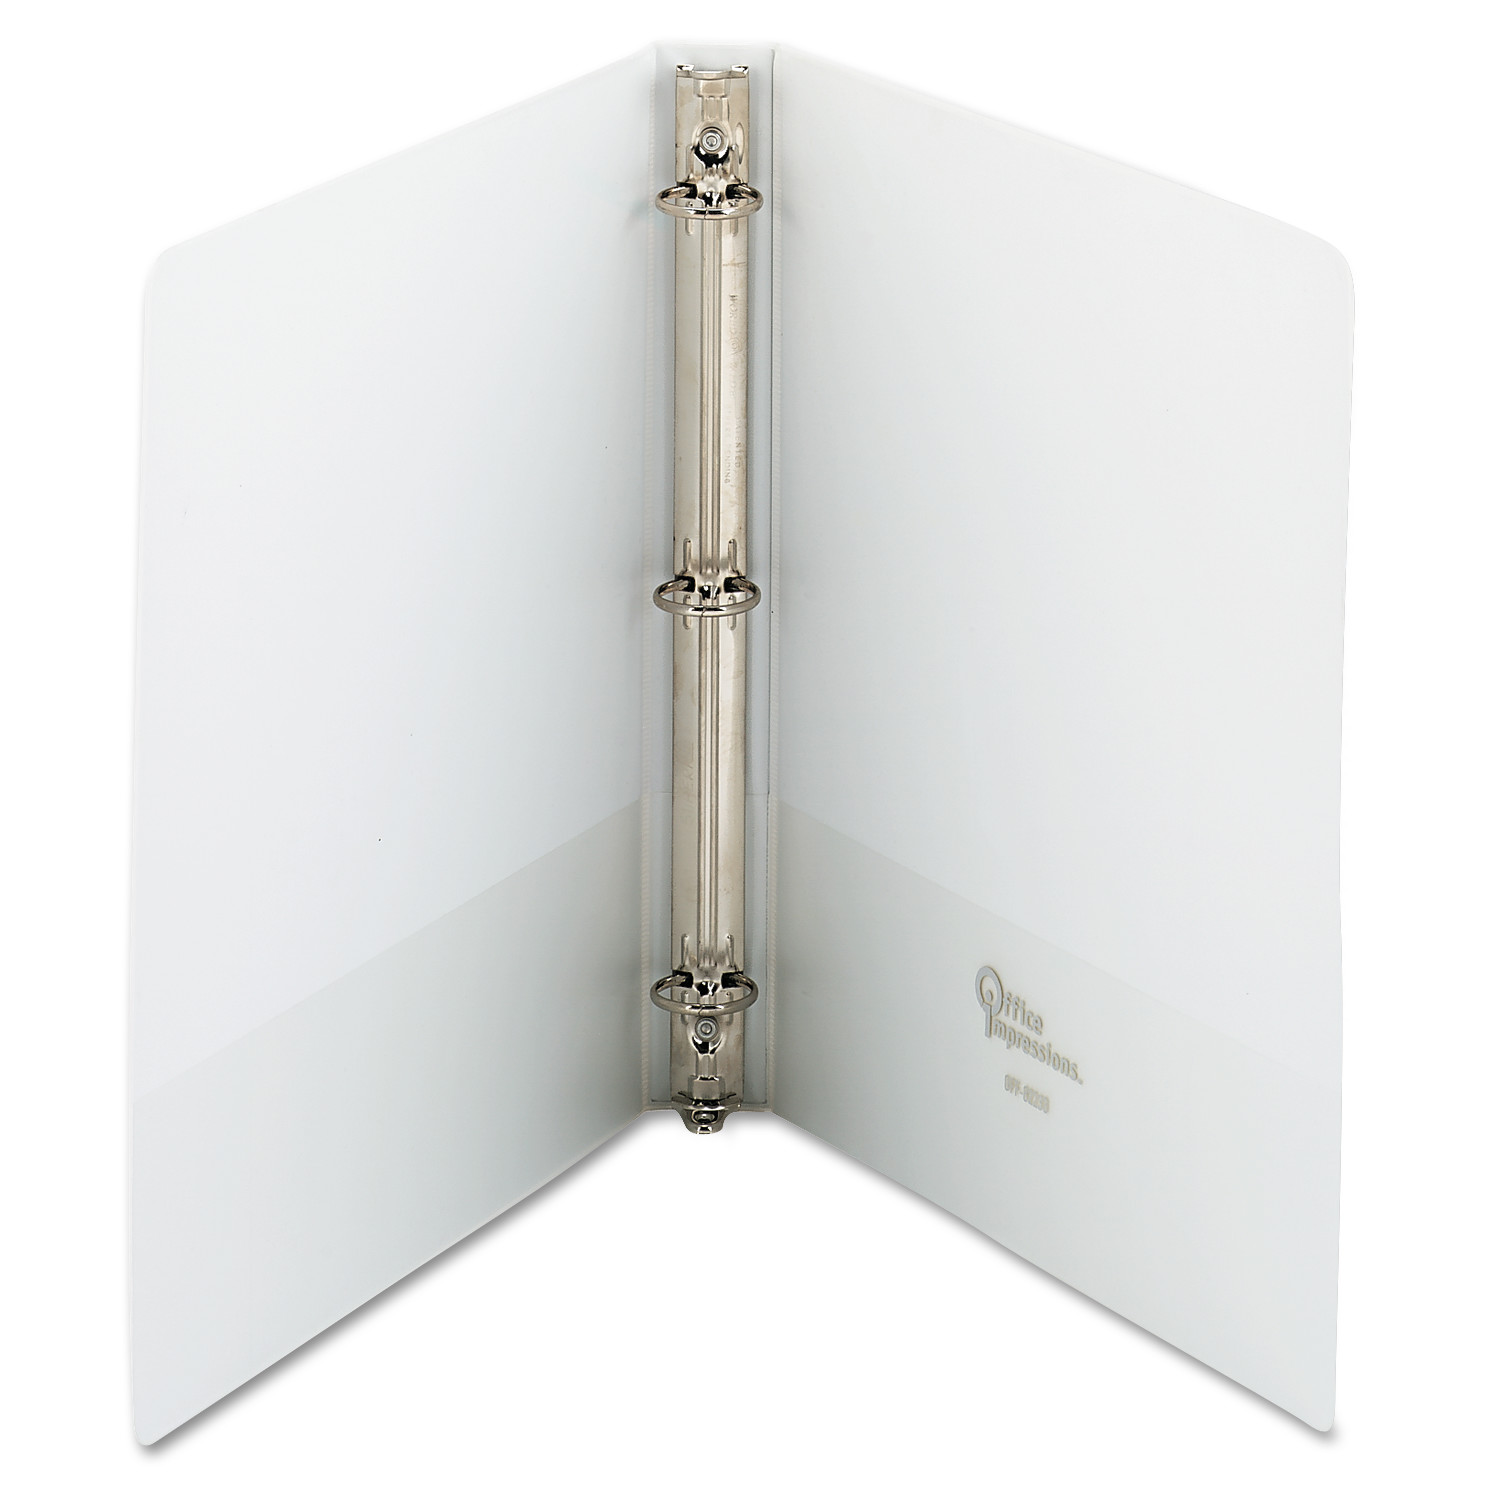 office impressions round ring vinyl view binders white 1 12 pack